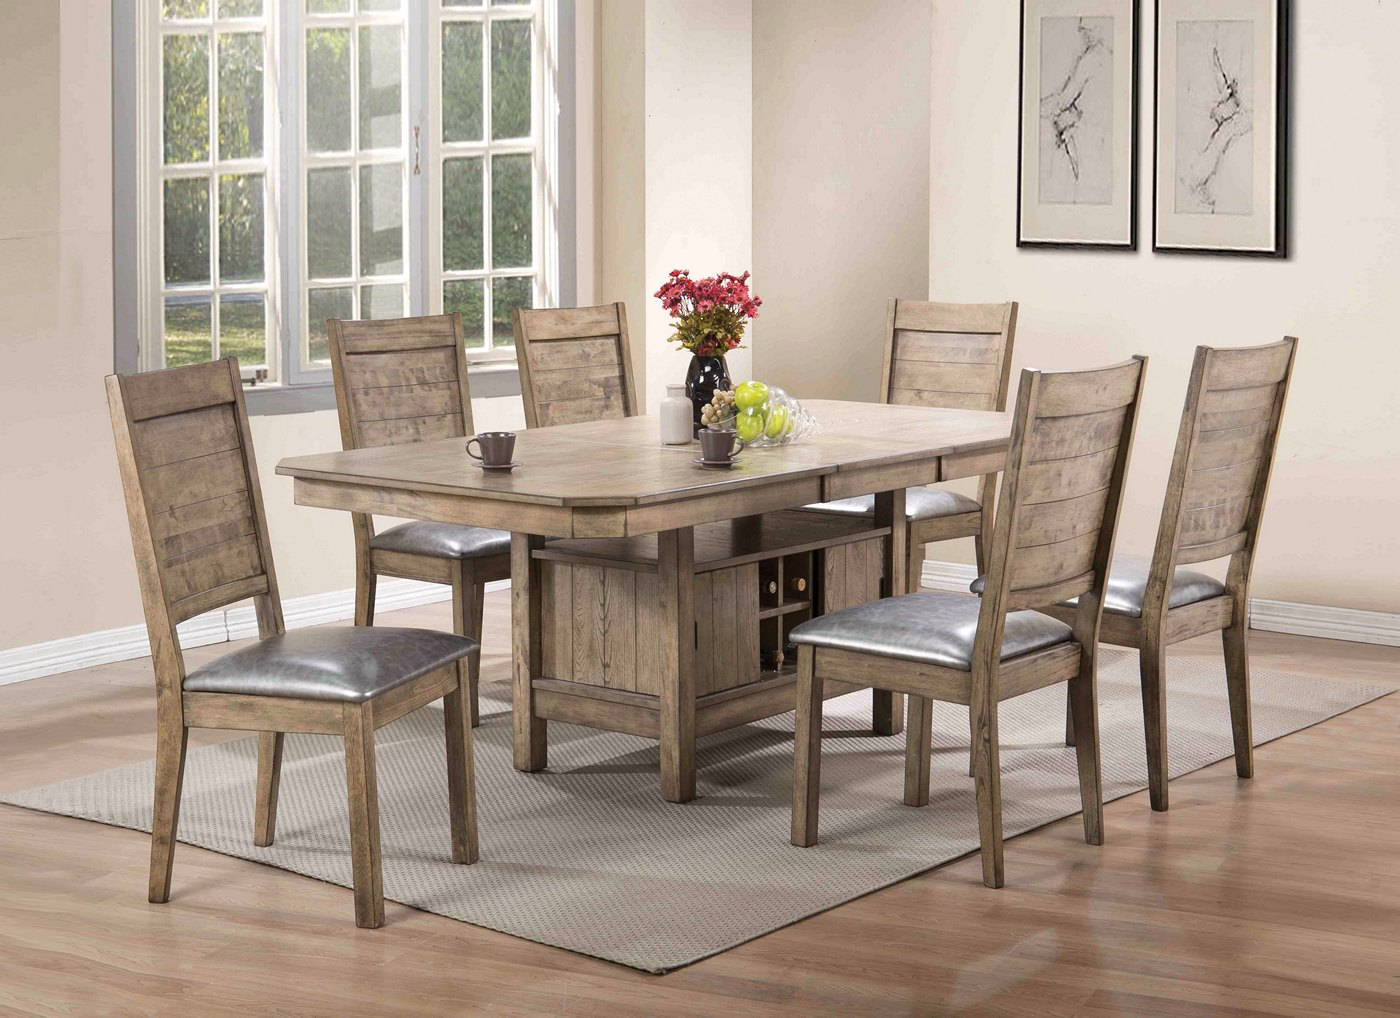 Valeria Modern 5 Pc 60 Quot 78 Quot Storage Dining Table Set In